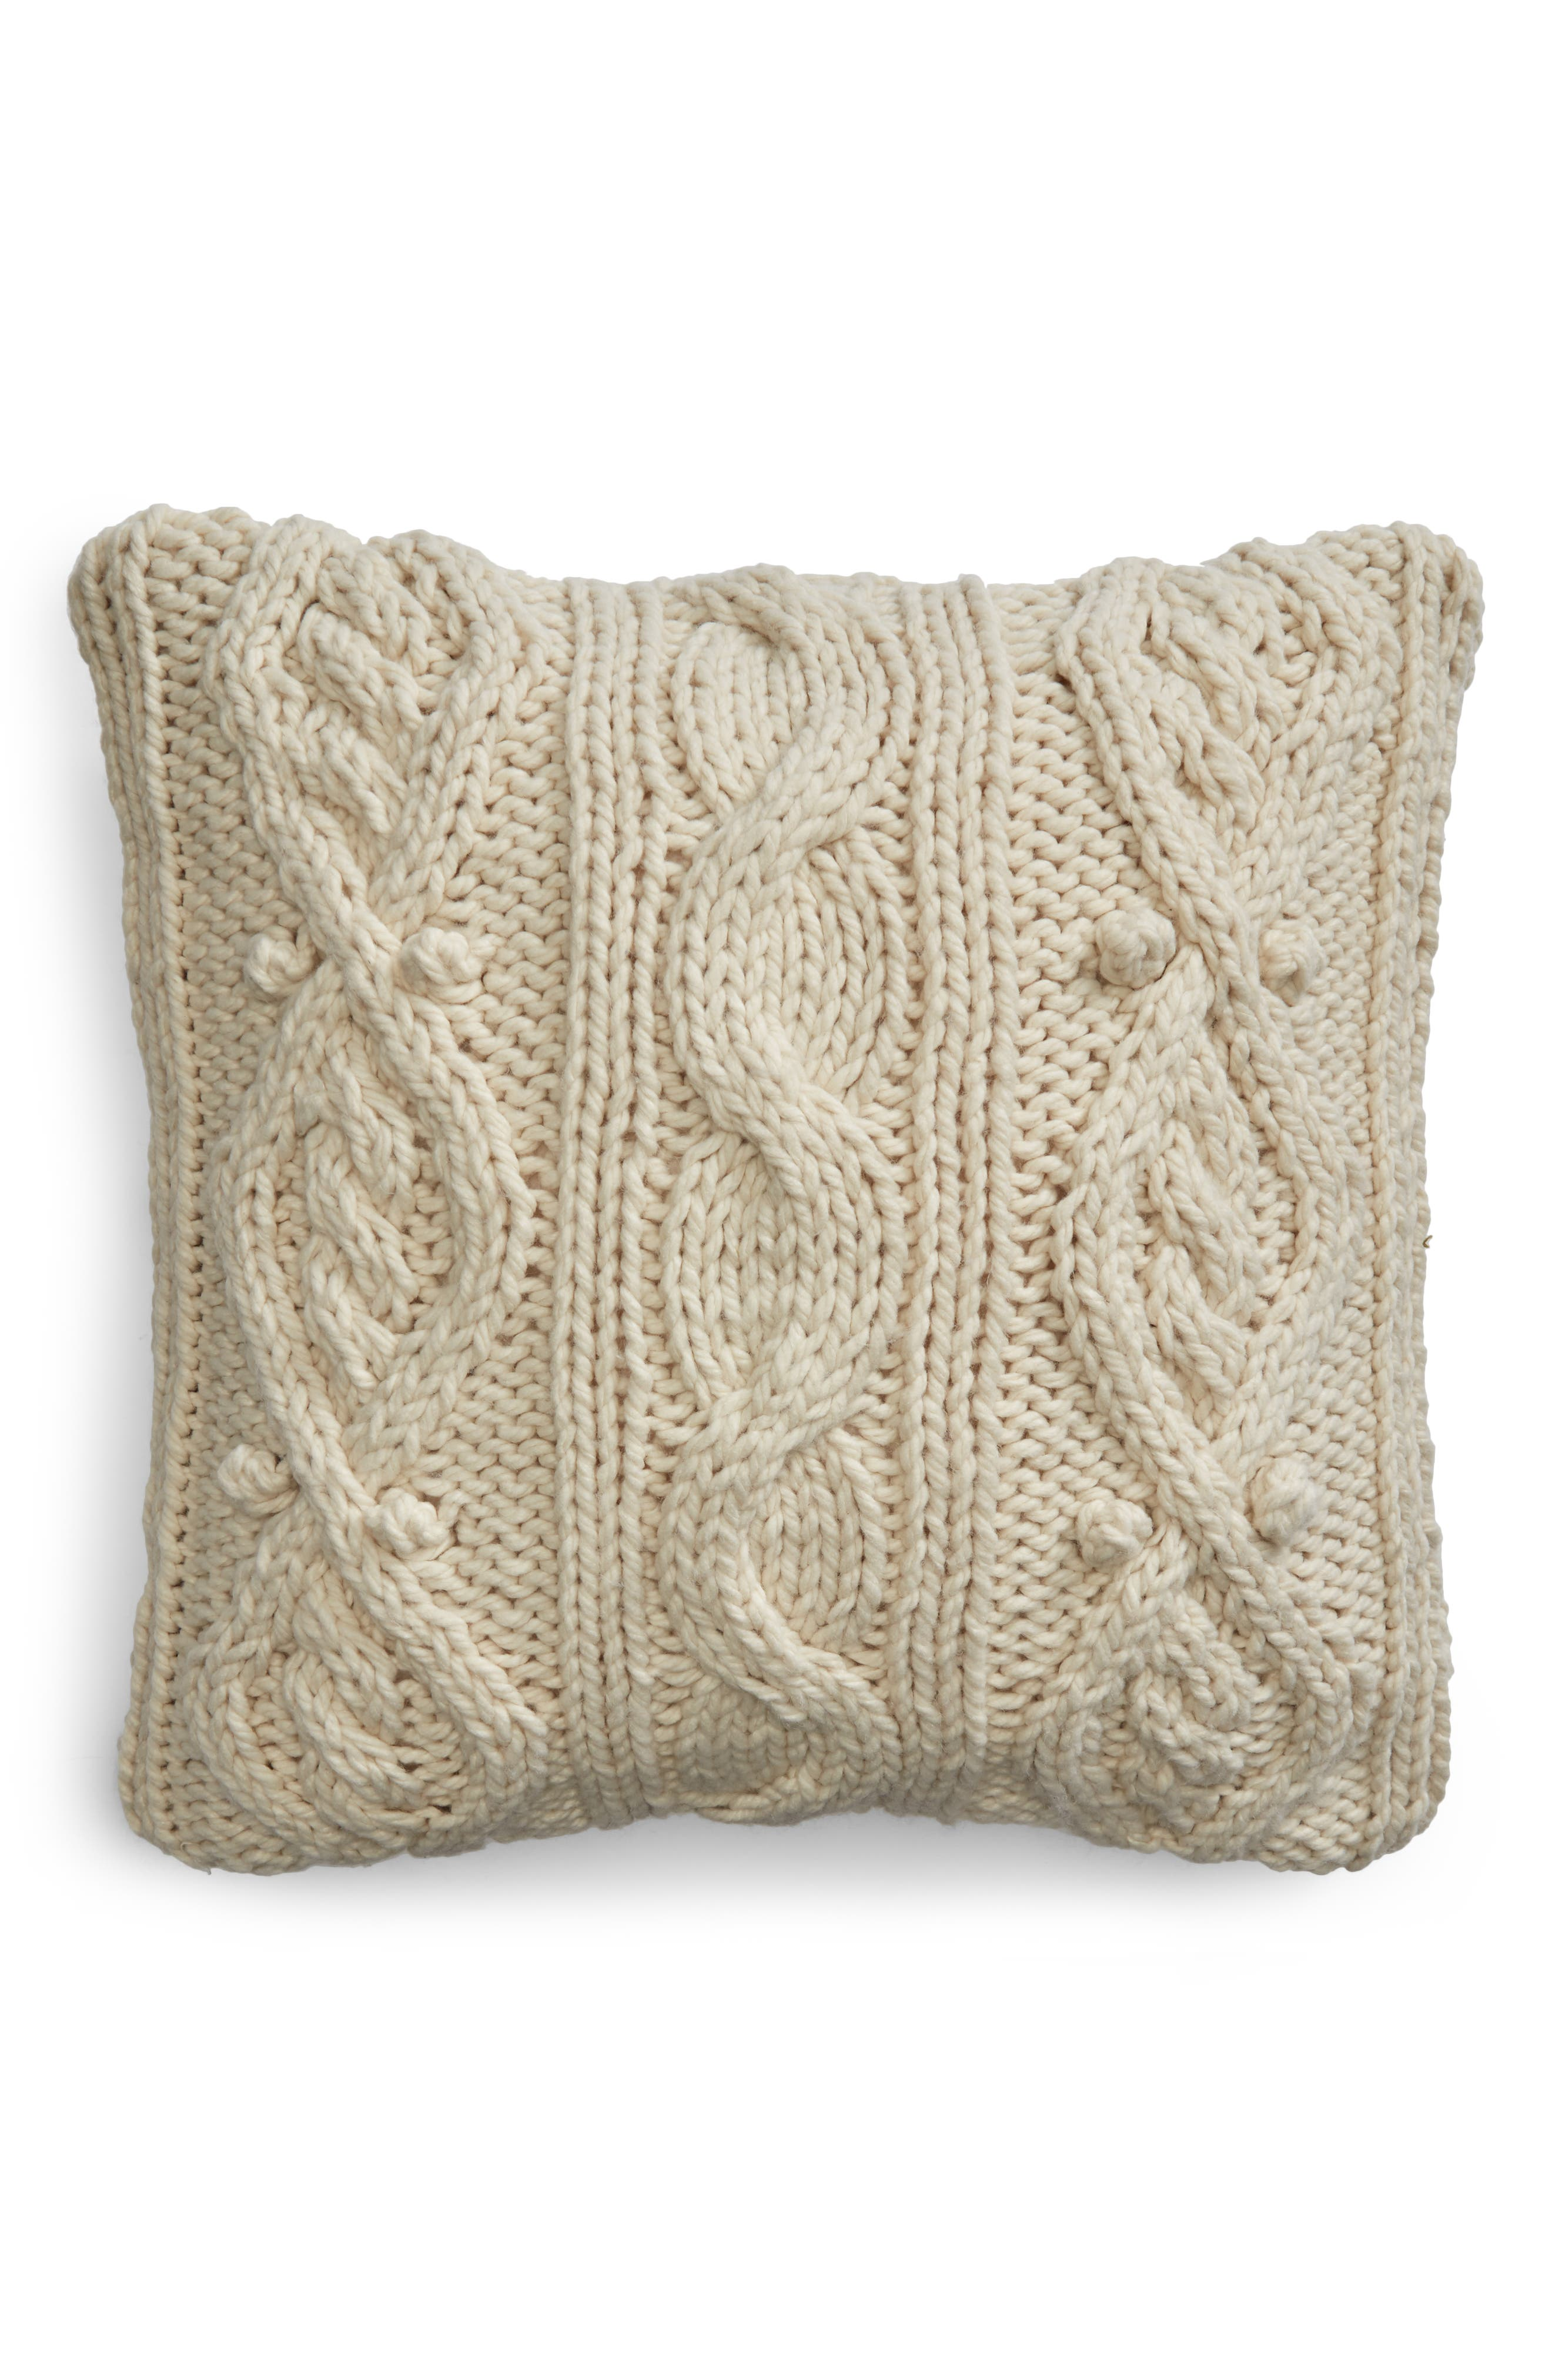 Chunky Cable Knit Accent Pillow,                             Main thumbnail 1, color,                             IVORY DOVE